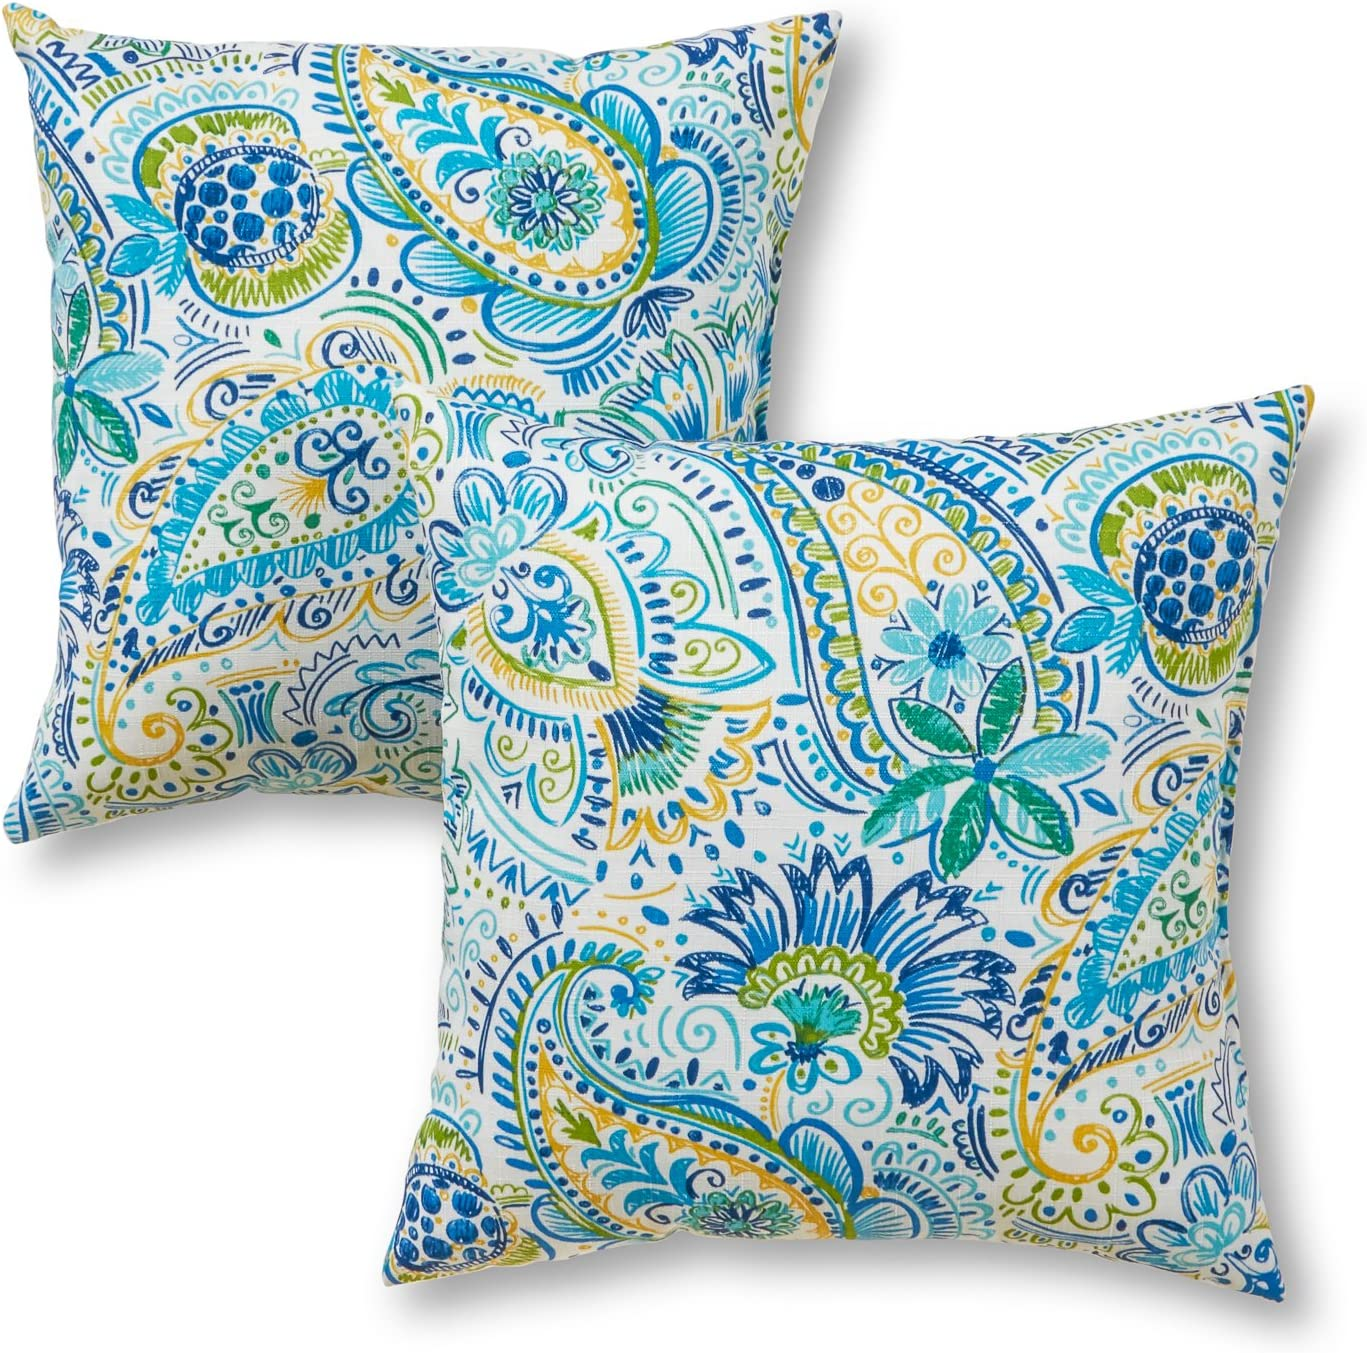 "Greendale Home Fashions 5"" Outdoor Accent Pillows in Painted Paisley (Set  of 5), Baltic"